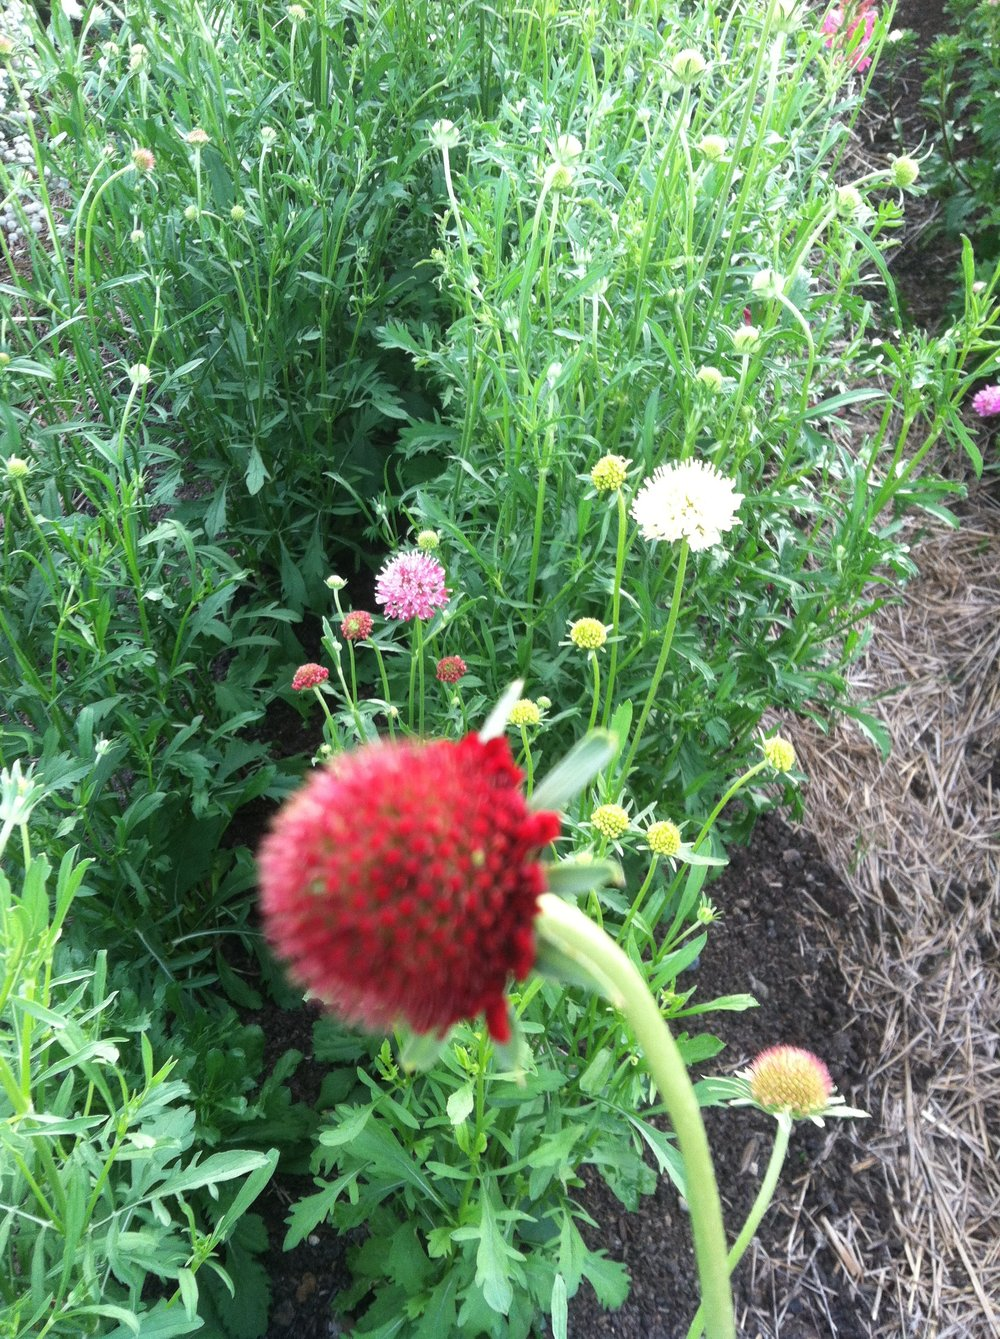 Pincushion flowers